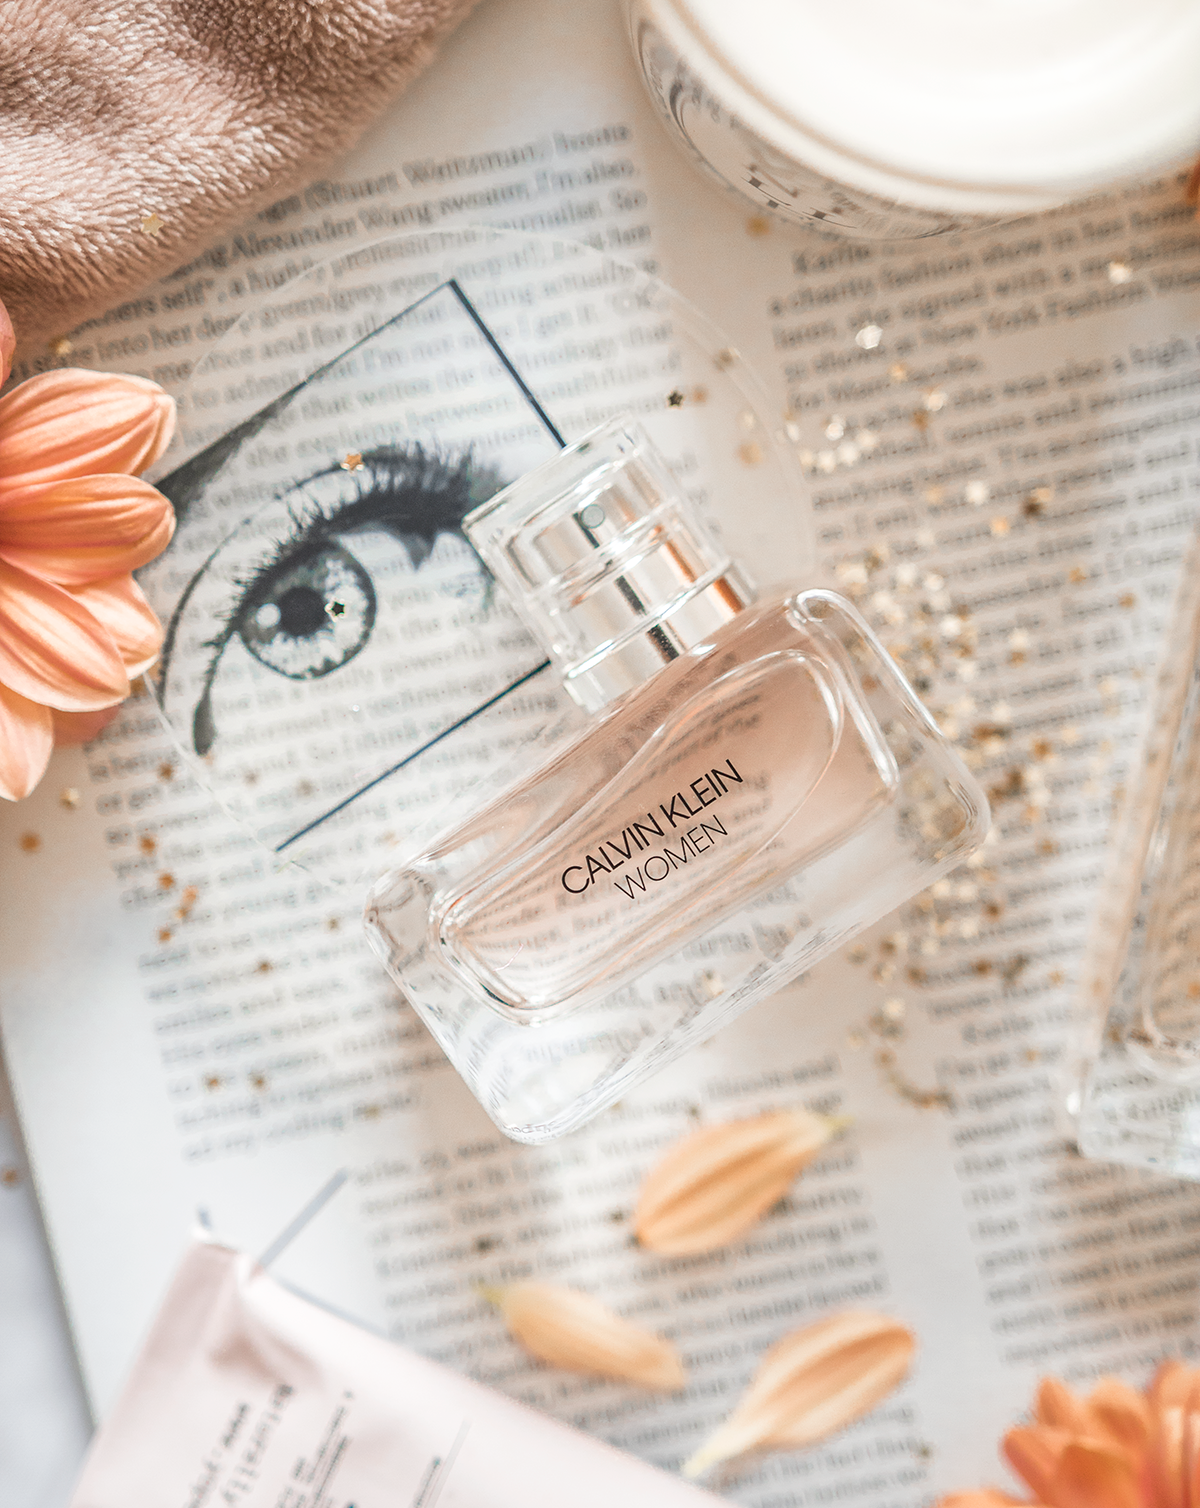 Calvin Klein Woman Launch at Fragrance Direct